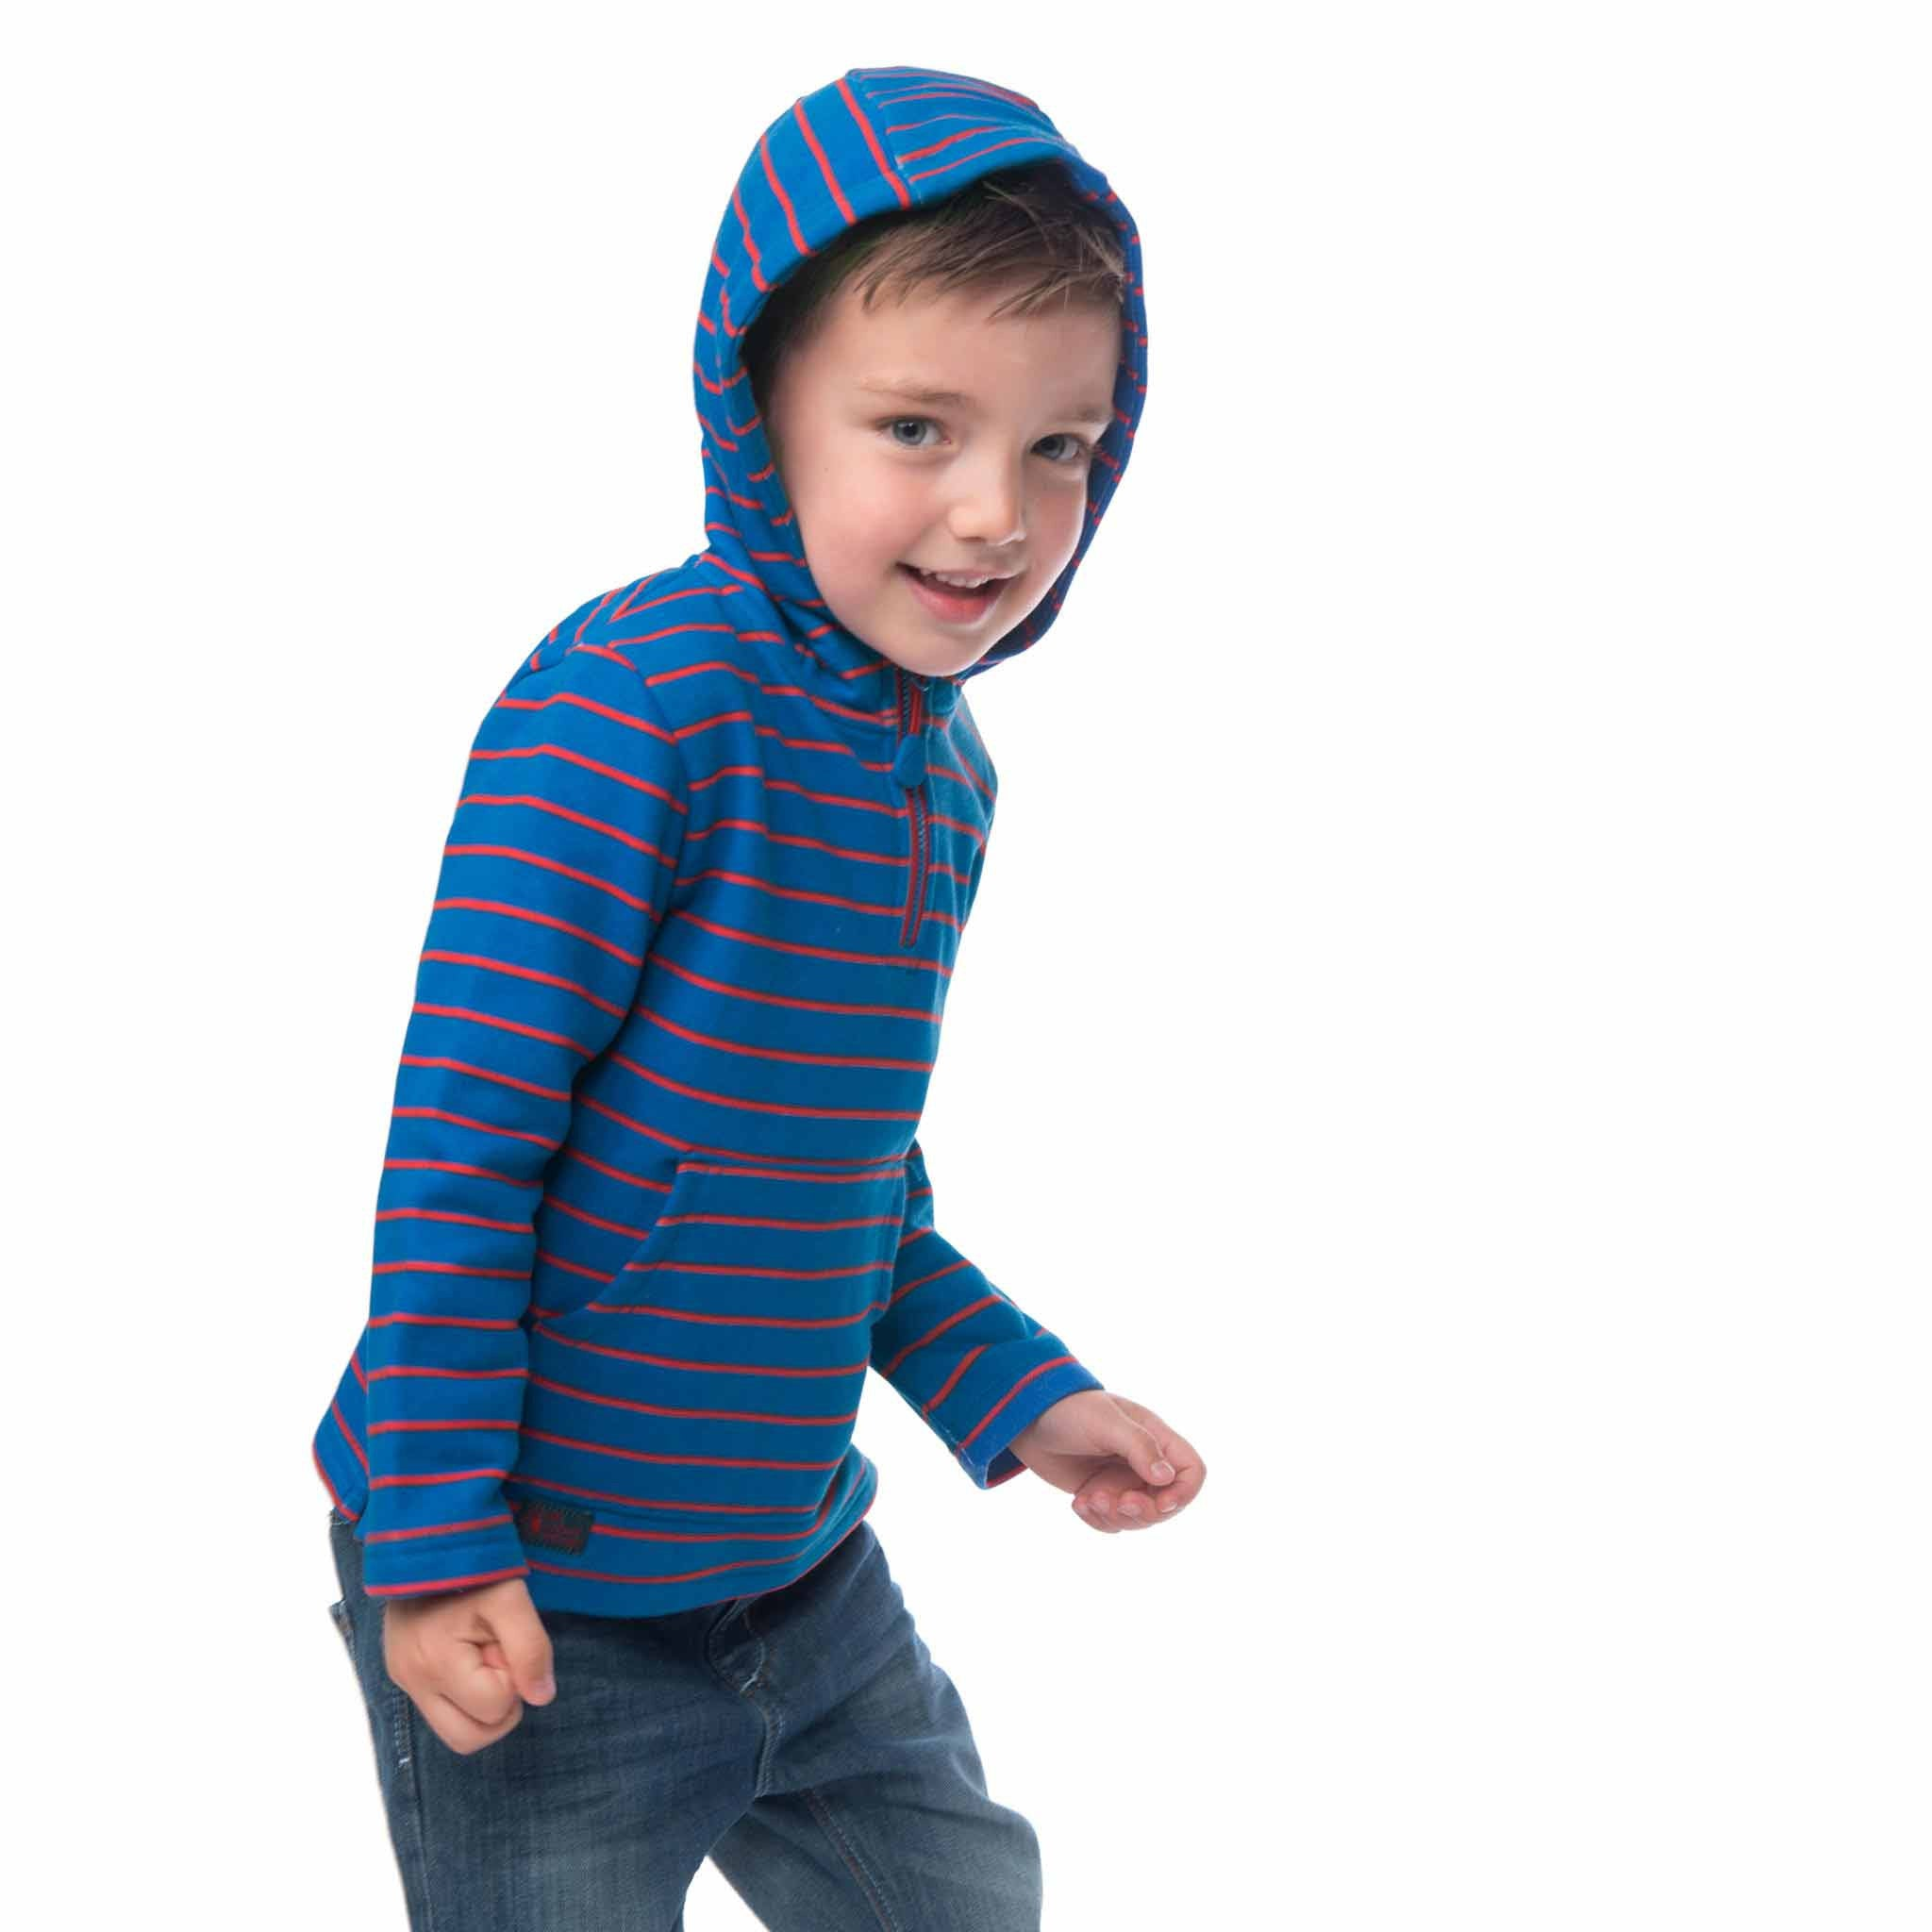 Lighthouse Boys' Bobby Half Zip Jersey Hoodie in Blue with Red Stripe. Half Zipped. Hood Up.